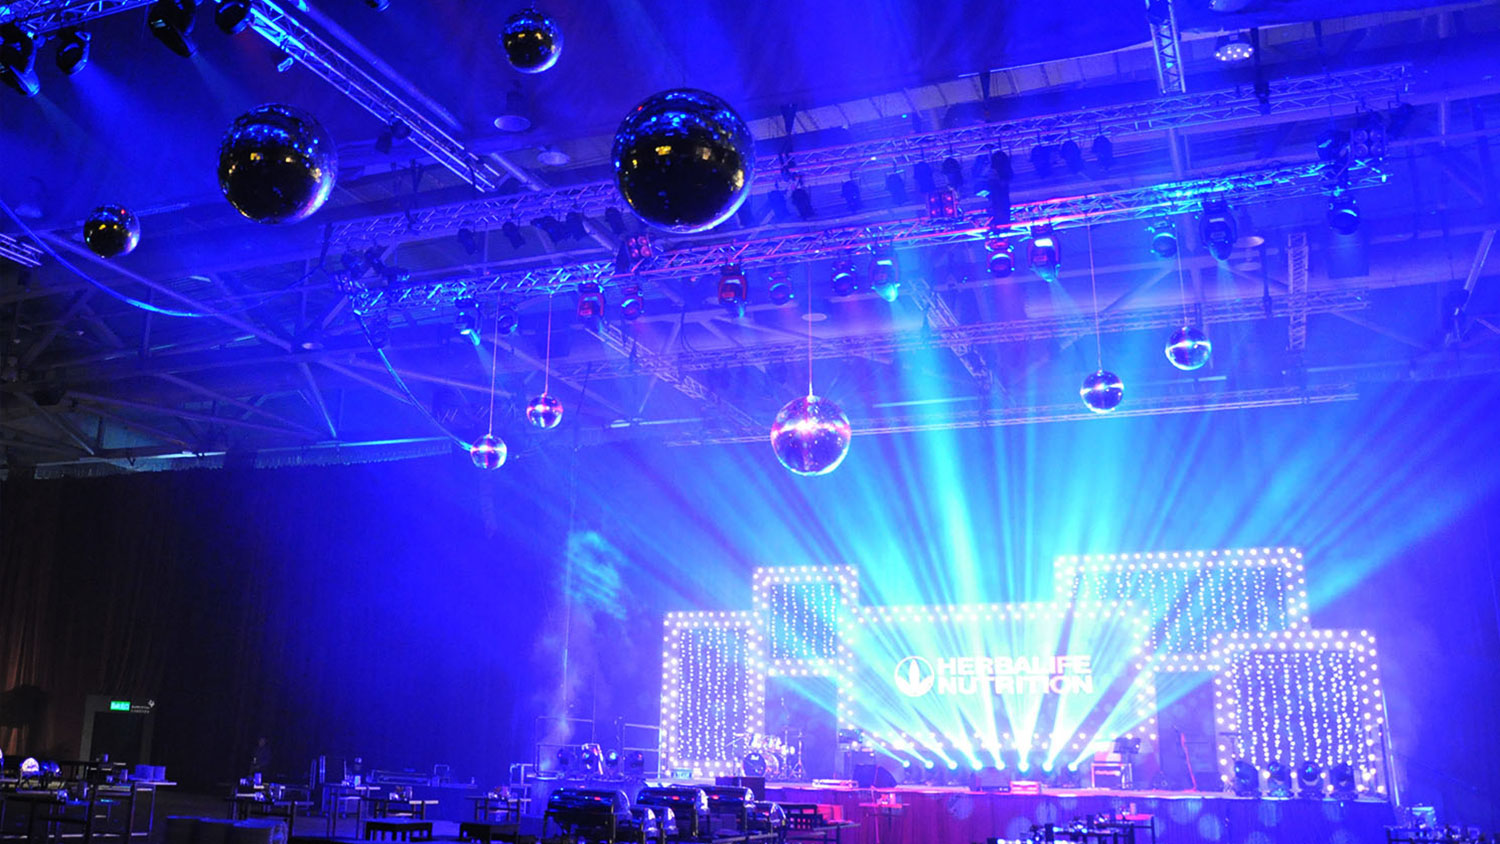 We are an audio visual company based in Hong Kong. We provide comprehensive audio-visual rental services for events. We own and offers a full suite of audio-visual equipment for hire including audio equipment, LED lighting, video projection, LED walls and the professional technicians to operate it to perfection.